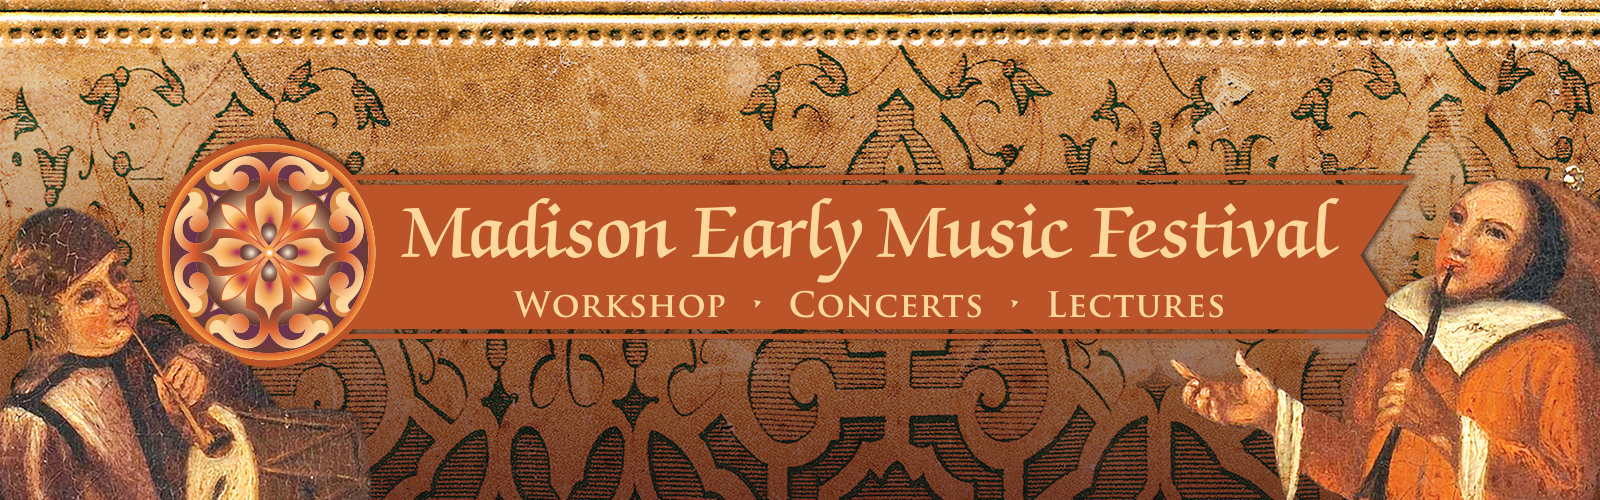 Madison Early Music Festival: Workshop, Concerts, Lectures